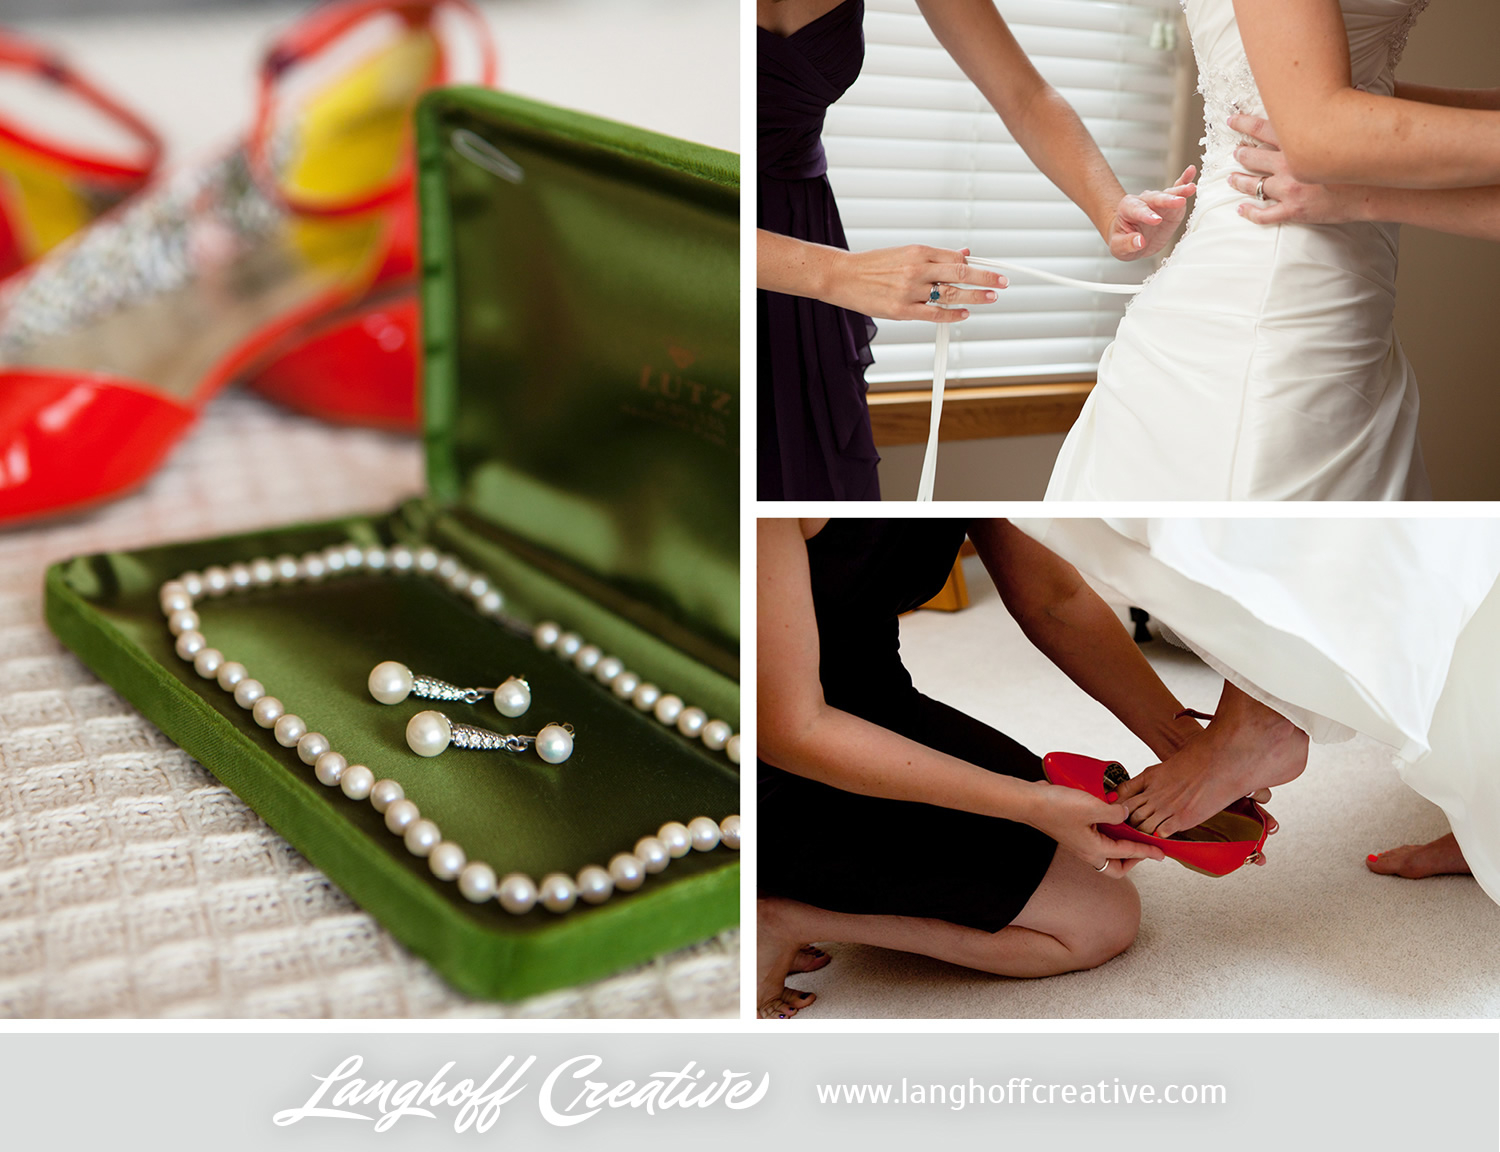 PlainfieldWedding-2013-LanghoffCreative-MattErin-3-photo.jpg